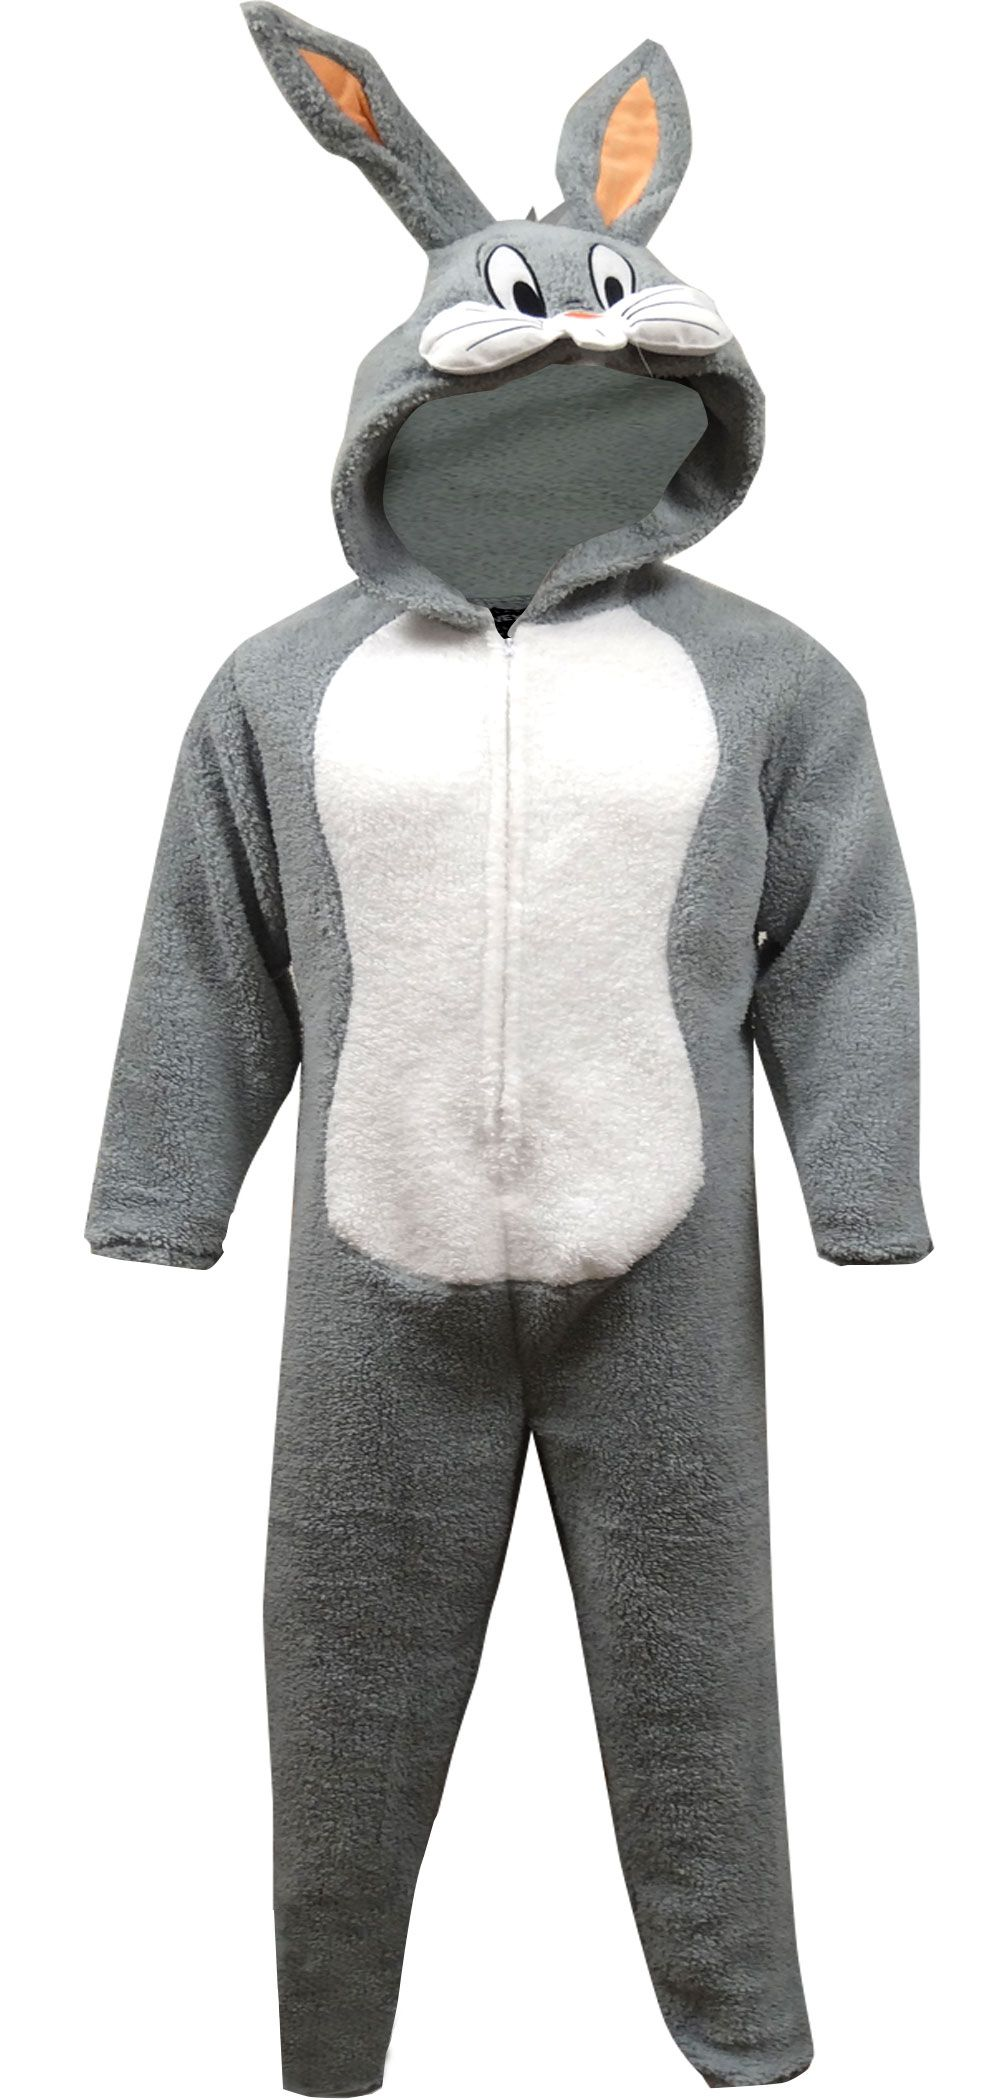 WebUndies.com Looney Tunes Bugs Bunny Onesie Union Suit Pajama ... 5a0413116